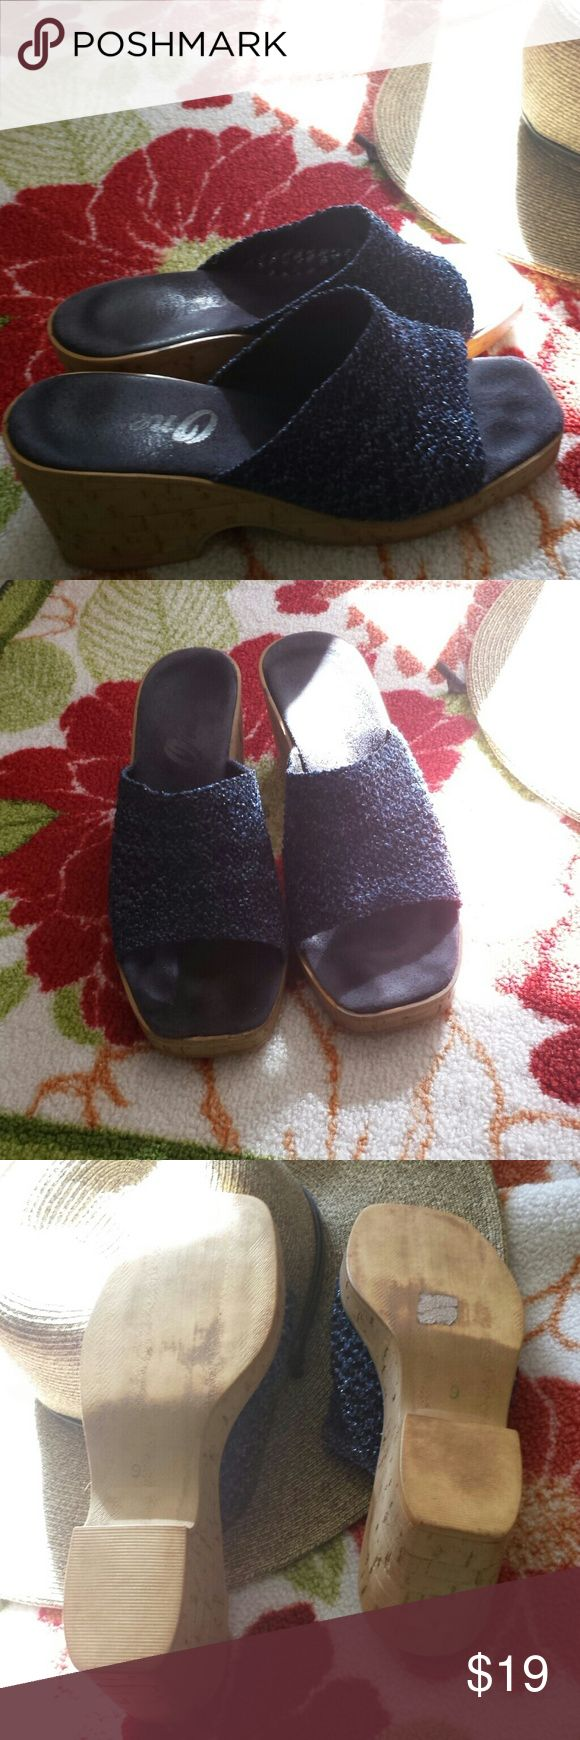 """Navy Onex sandals Perfect blue jean sandals. So comfortable.  If you've never worn Onex, be prepared to fall in love. 2 1/2"""" heel. Onex Shoes Sandals"""